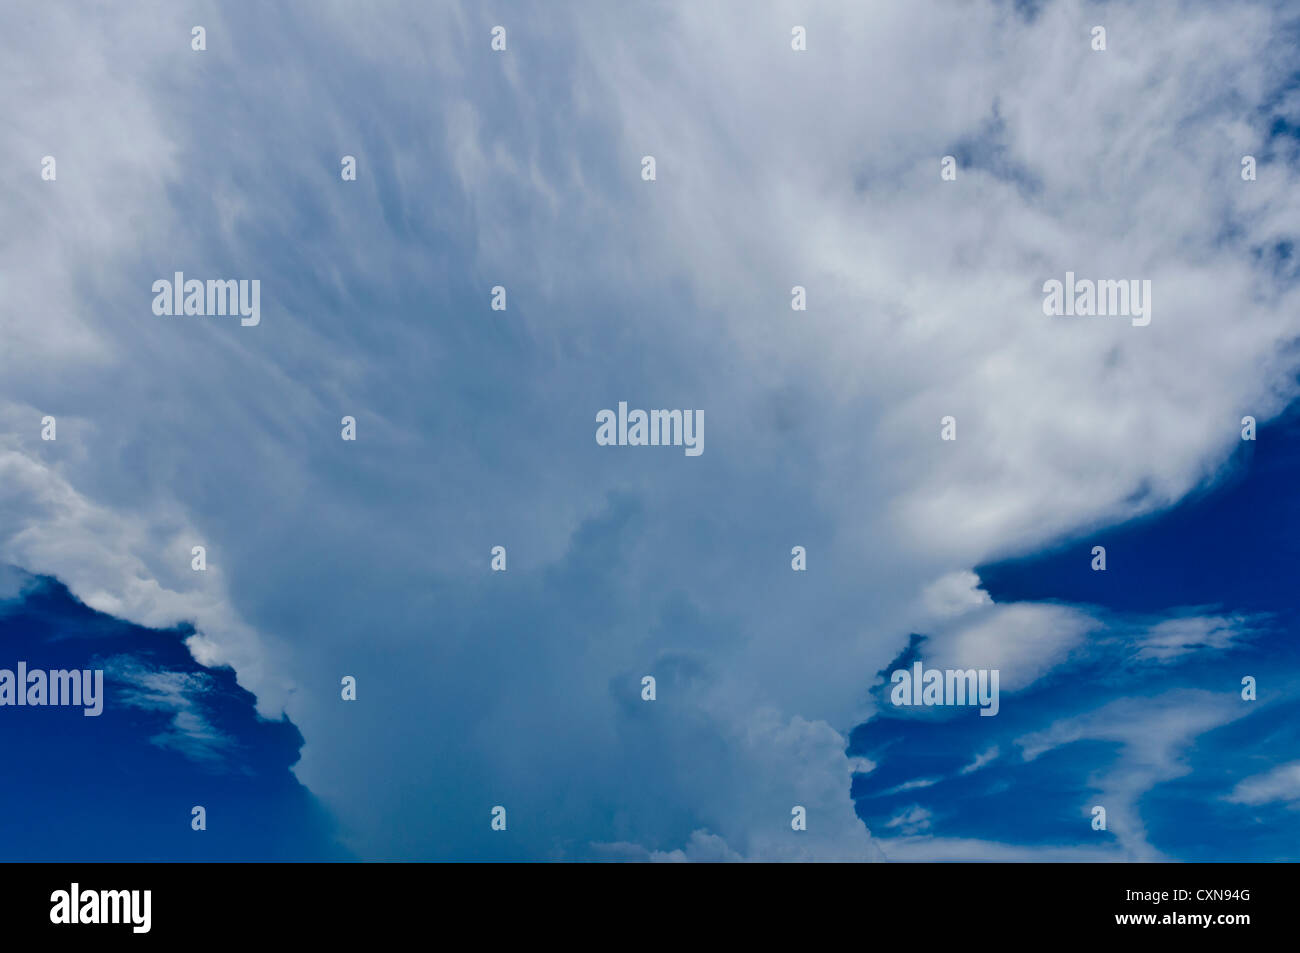 Single-cell Cumulonimbus incus (Cb) towering vertical cloud (family D2), indicates thunderstorms and inclement weather, - Stock Image